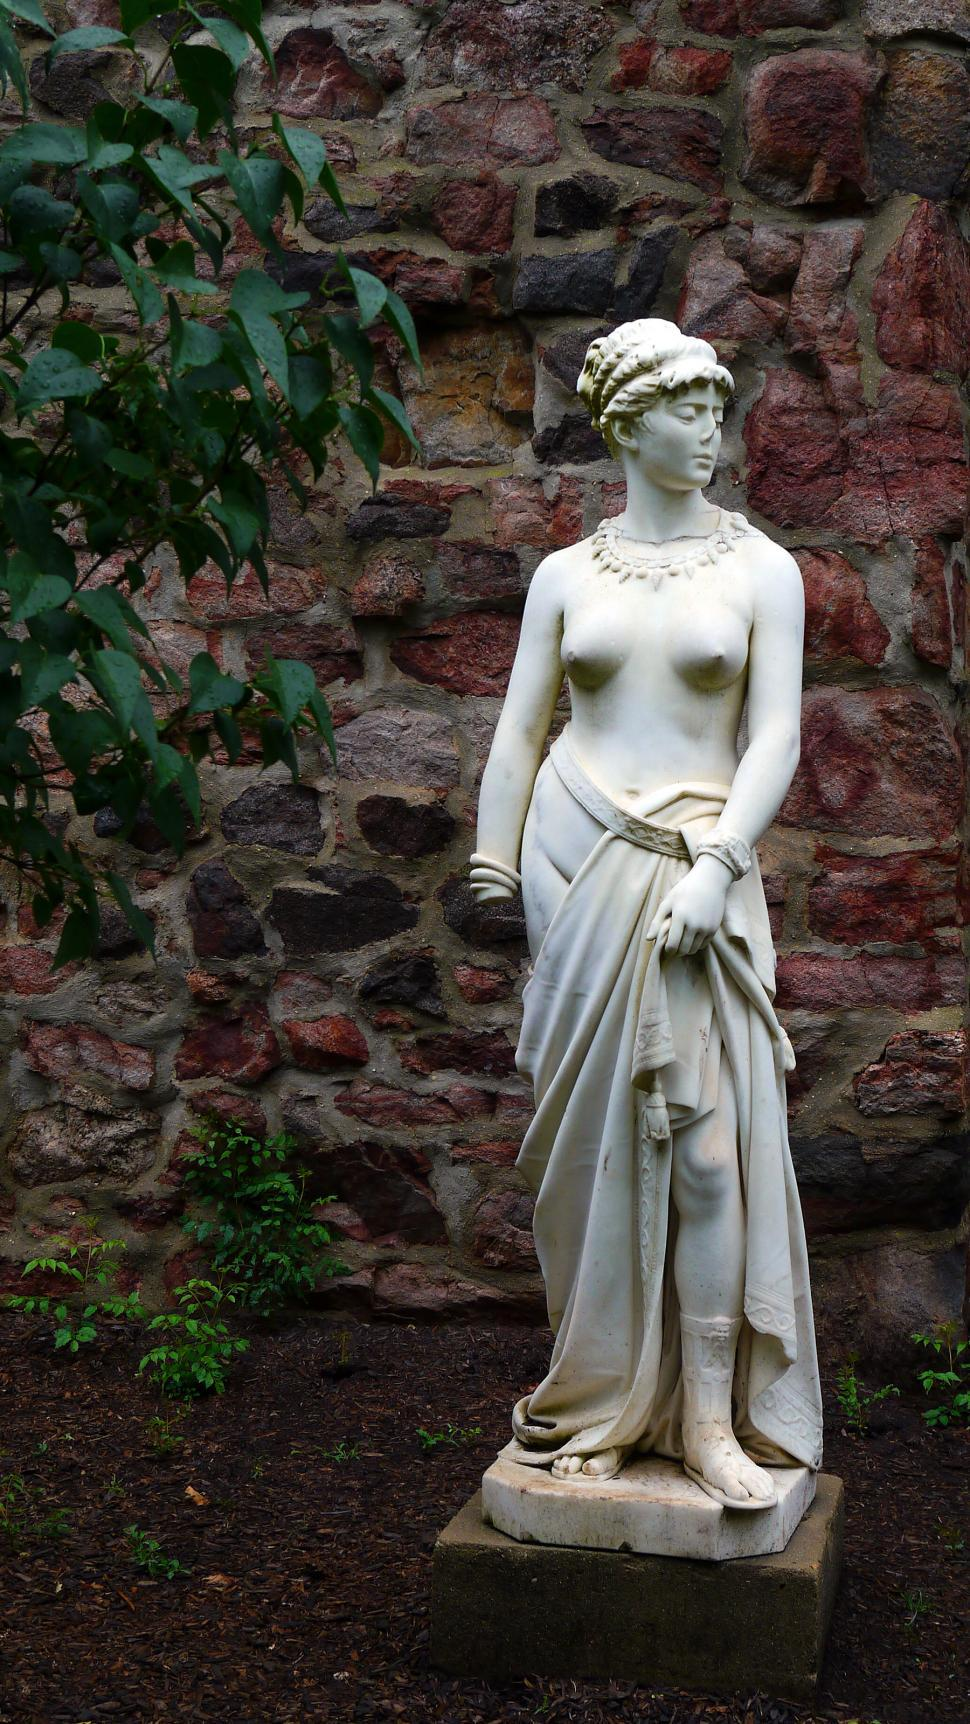 Download Free Stock HD Photo of Garden Carved Stature Online